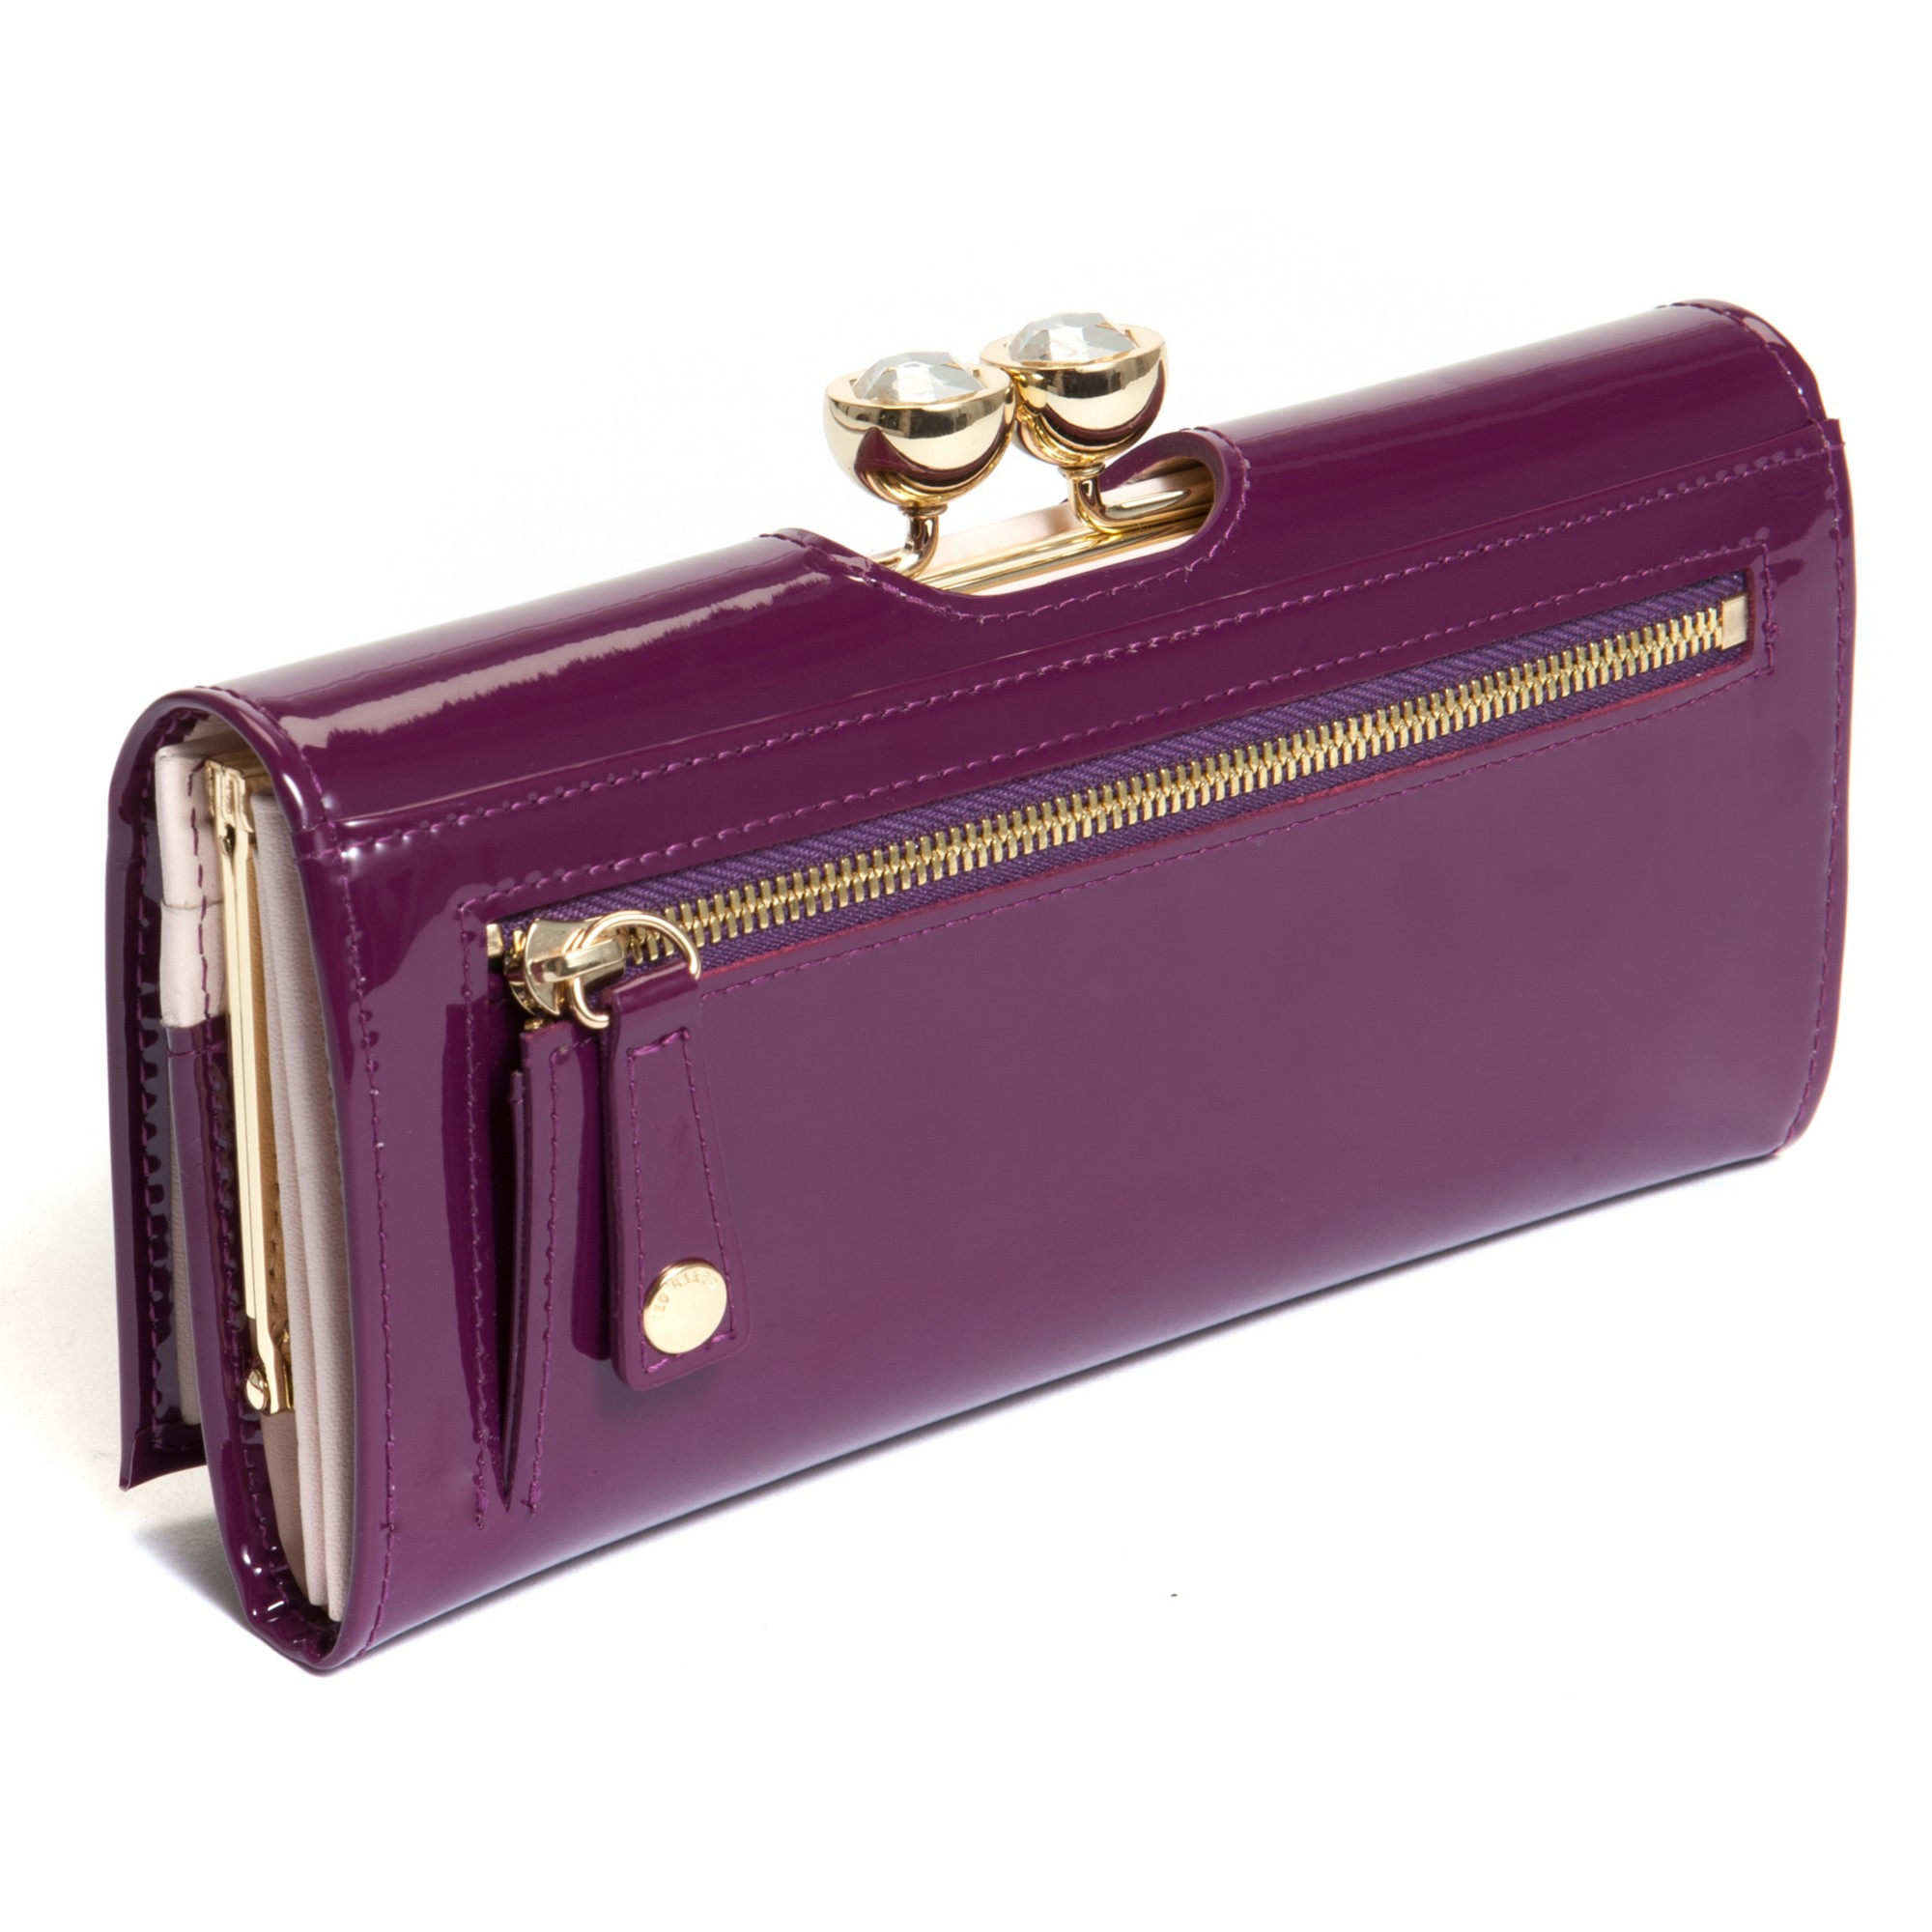 43c5c3cedc01 Ted Baker Kady Crystal Bobble Leather Matinee Purse In Purple Lyst. Ted  Baker Bear Foil Detail ...